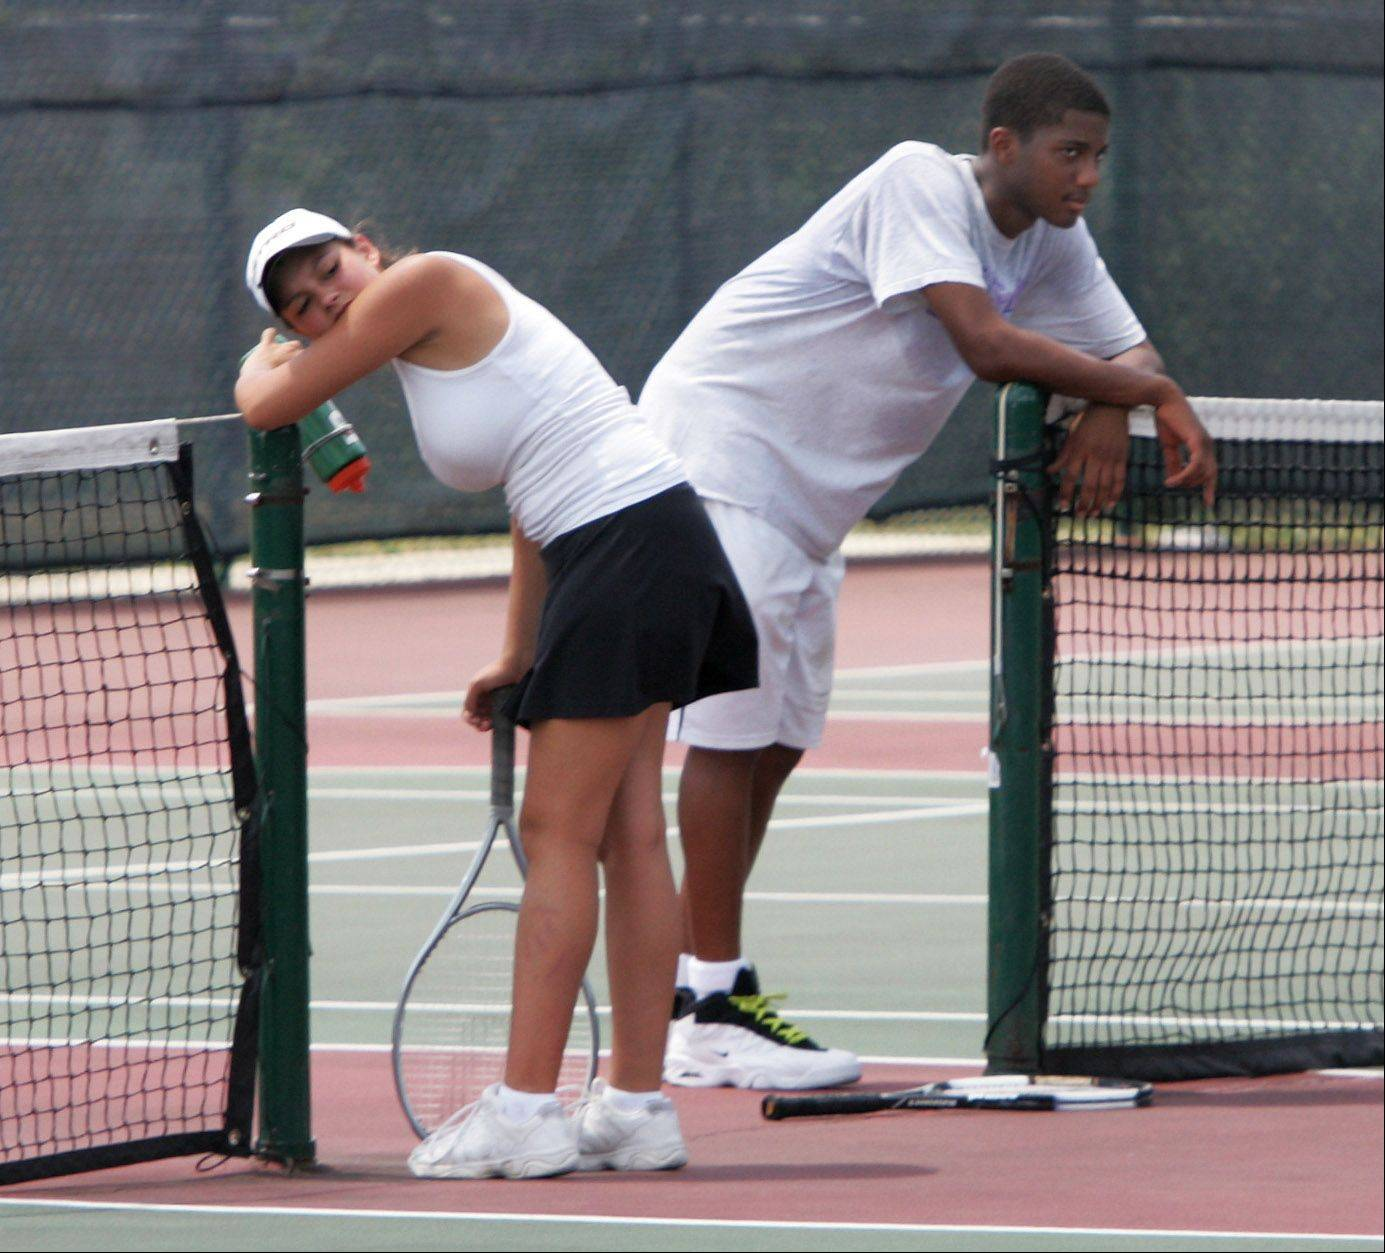 Nicole Garcia, 17, left, and Aaron Jackson, 18, are exhausted after coaching tennis at Grayslake Central High School's summer tennis camp Tuesday. The temperatures soared toward 100 degrees for another day adding to the extremely hot summer.